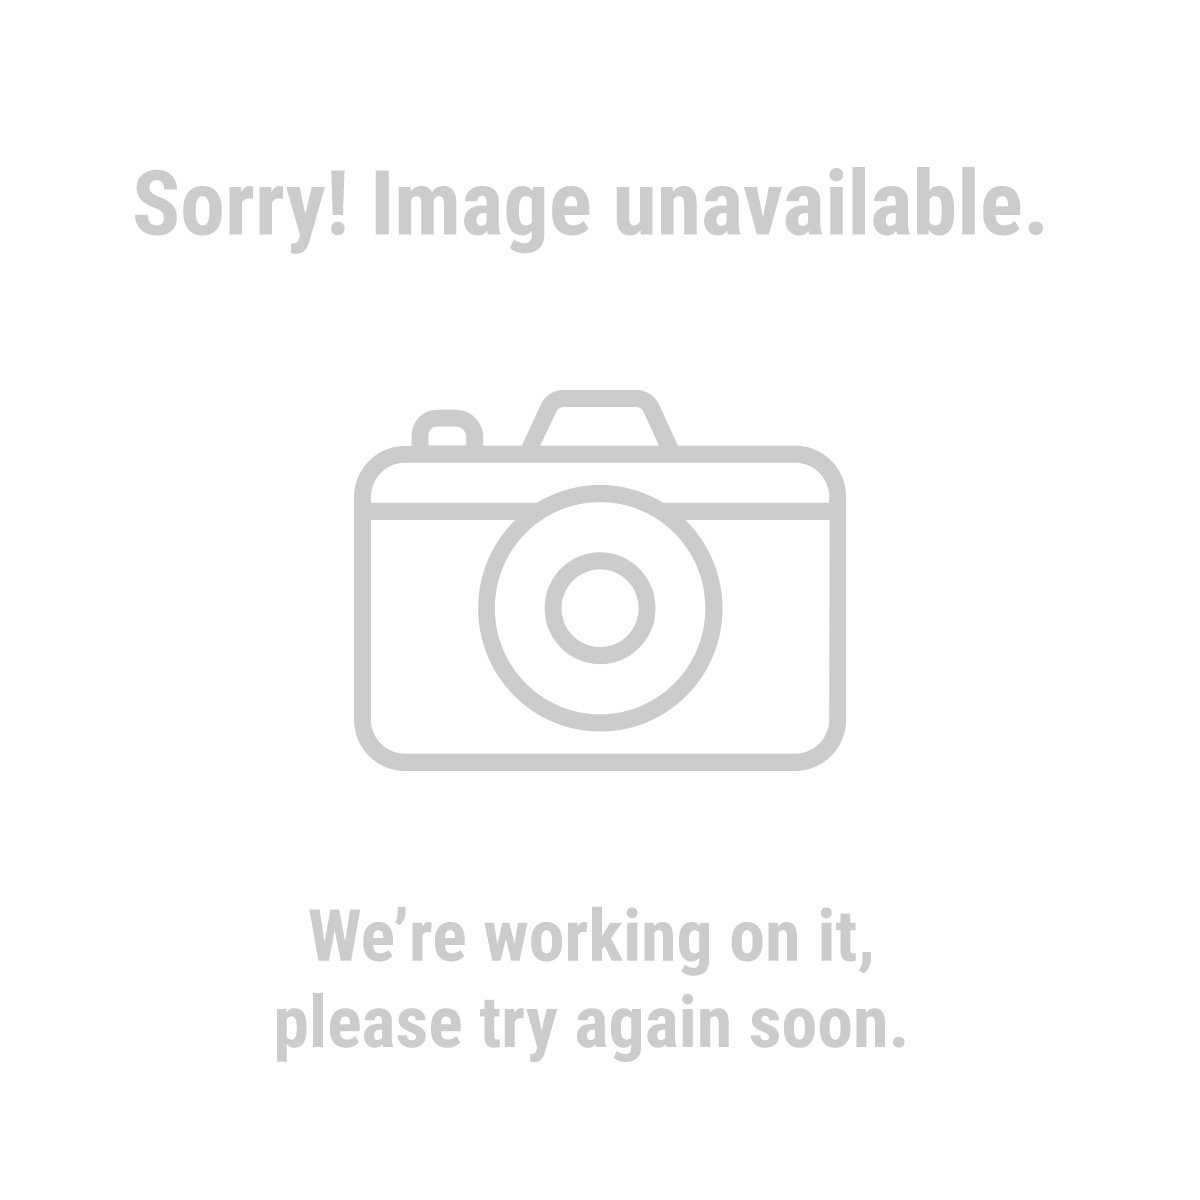 "Pittsburgh 67899 10 Piece 1/2"" Drive Metric Impact Socket Set"